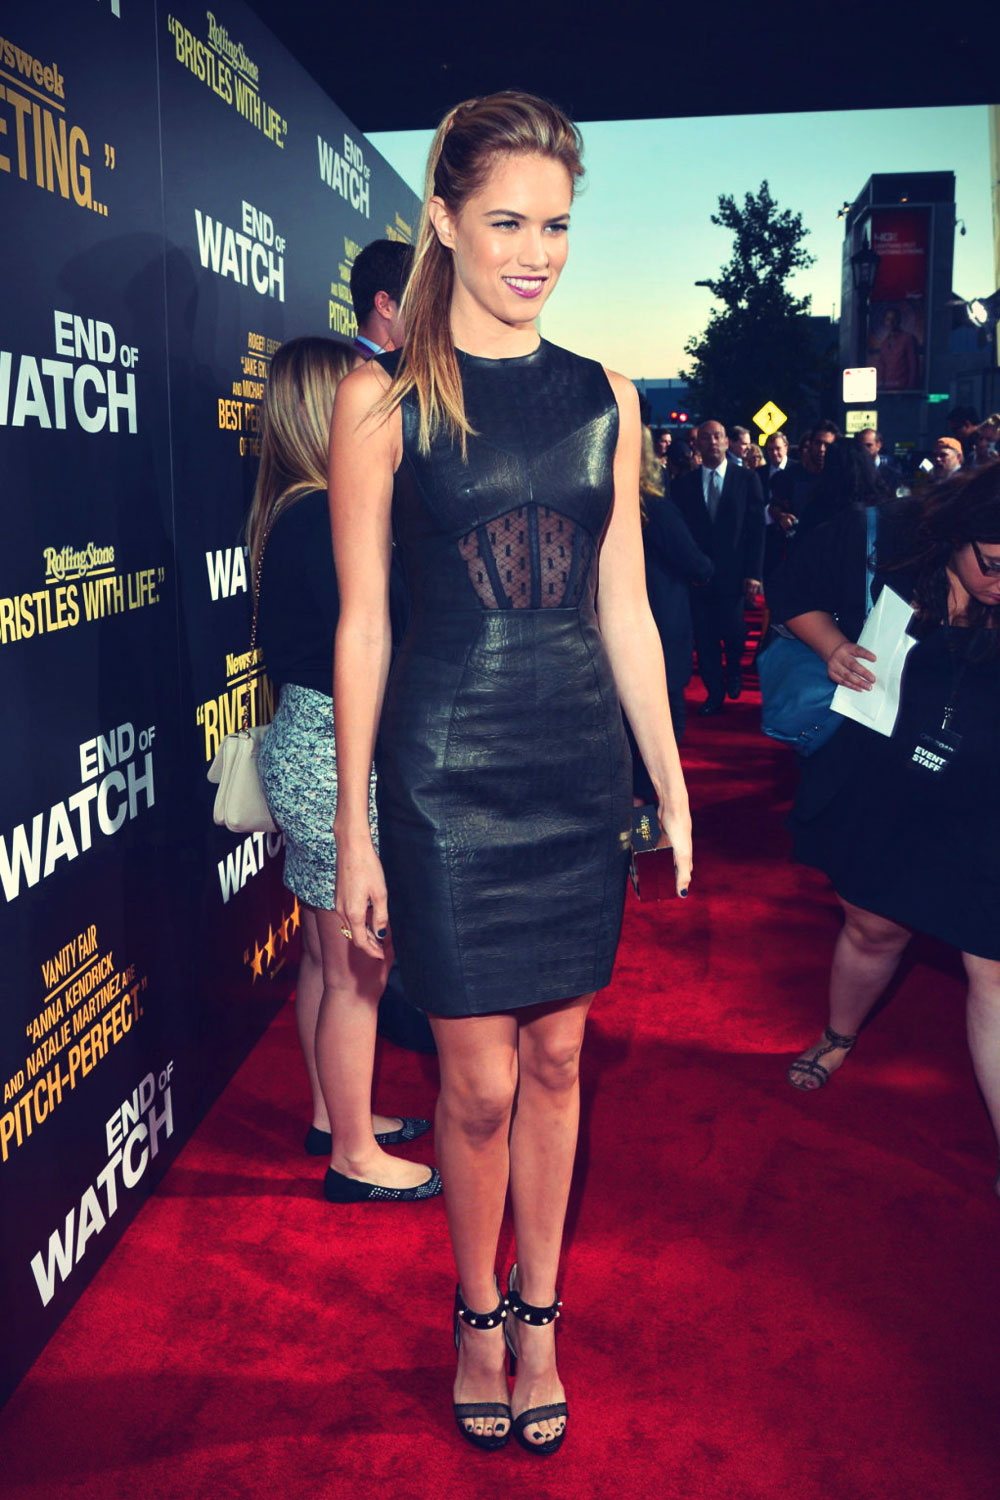 Cody Horn at End of Watch premiere